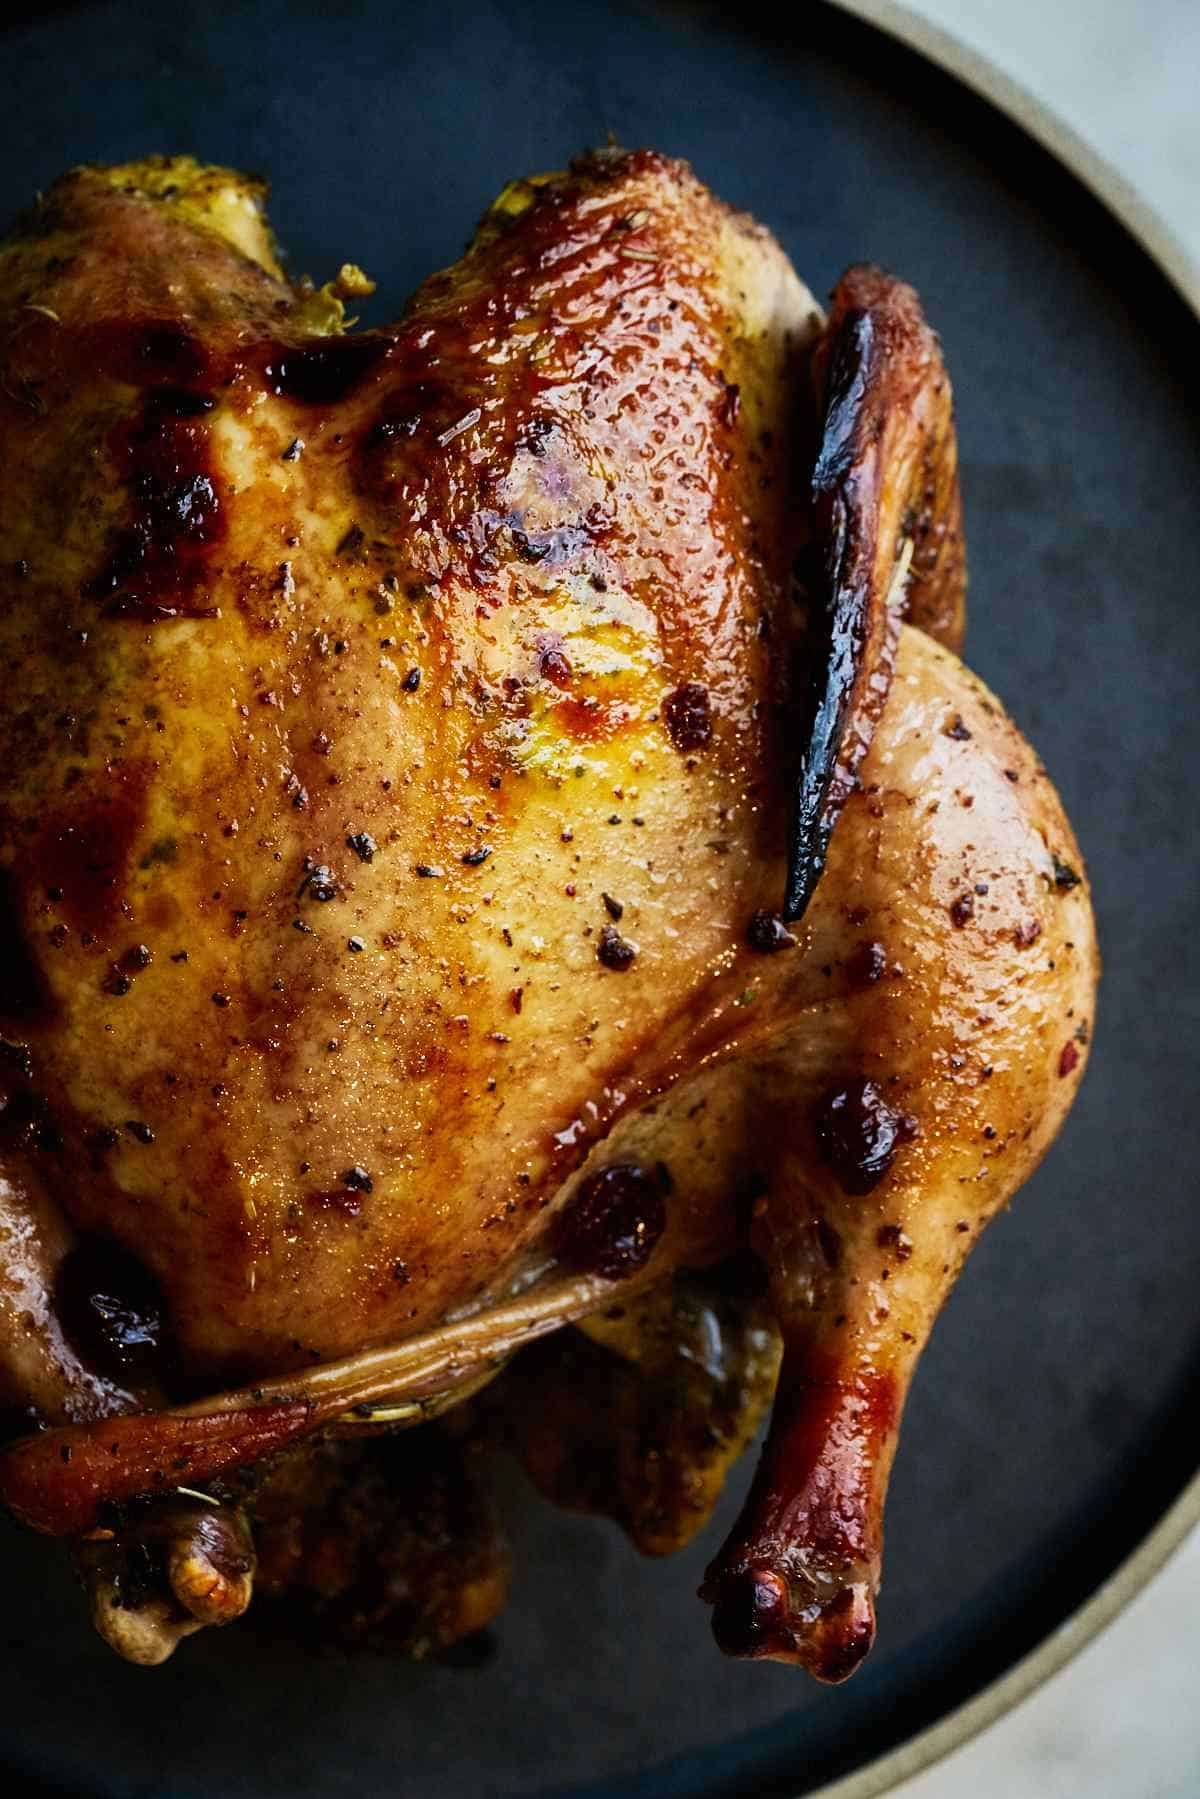 Roasted whole chicken on a black plate.